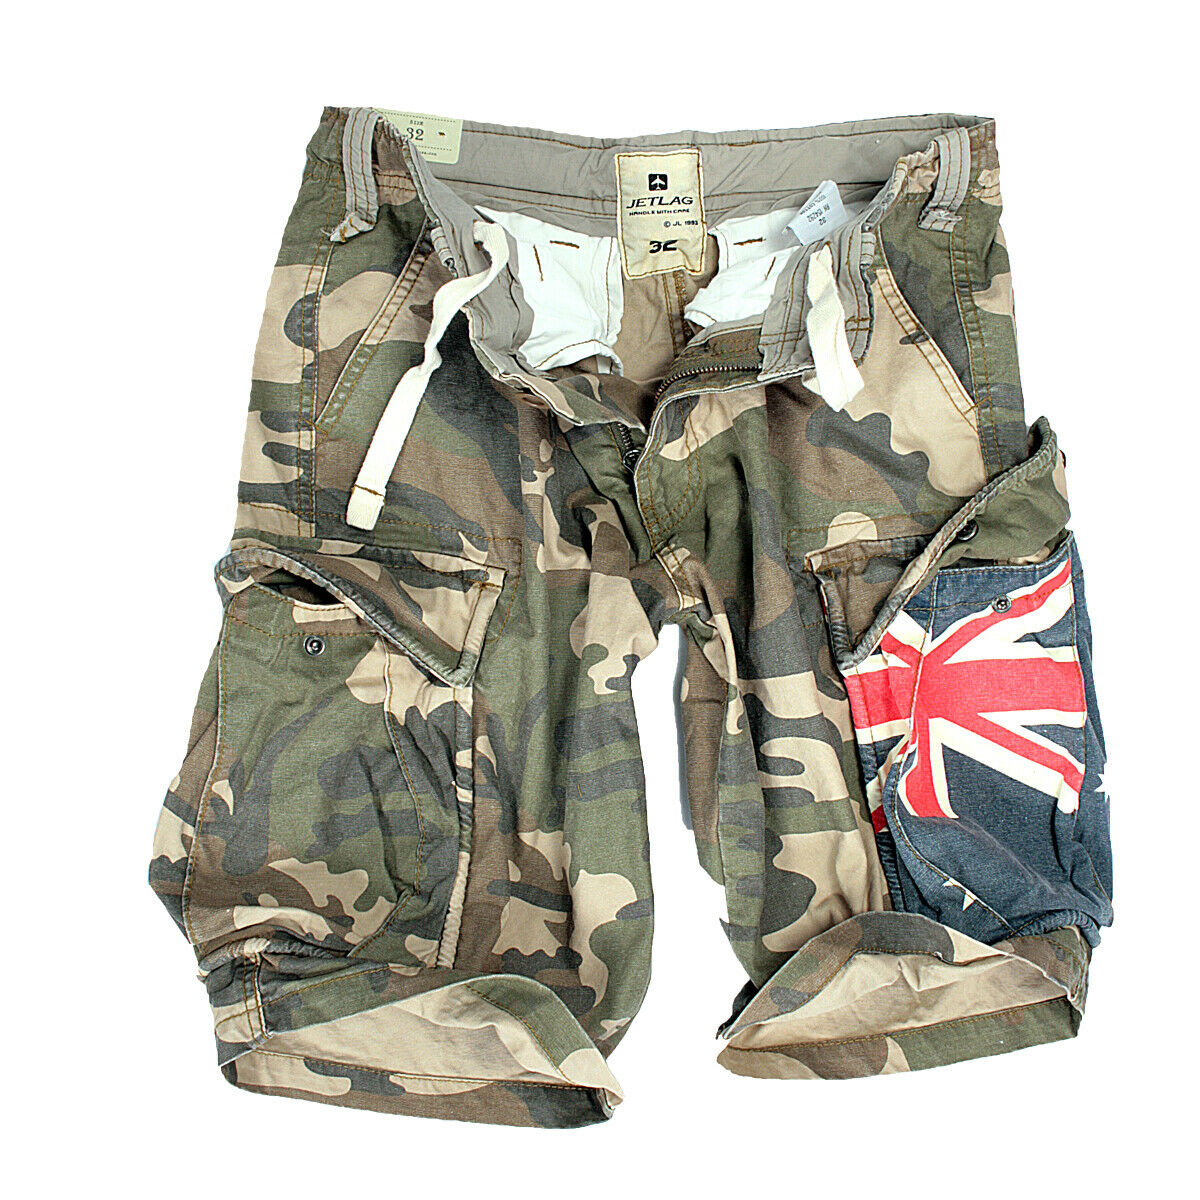 a03821e6ae Jet Lag Men's Cargo Bermuda Shorts Short Trousers Army Camouflage USA  Australia 31 Army-usa for sale online | eBay